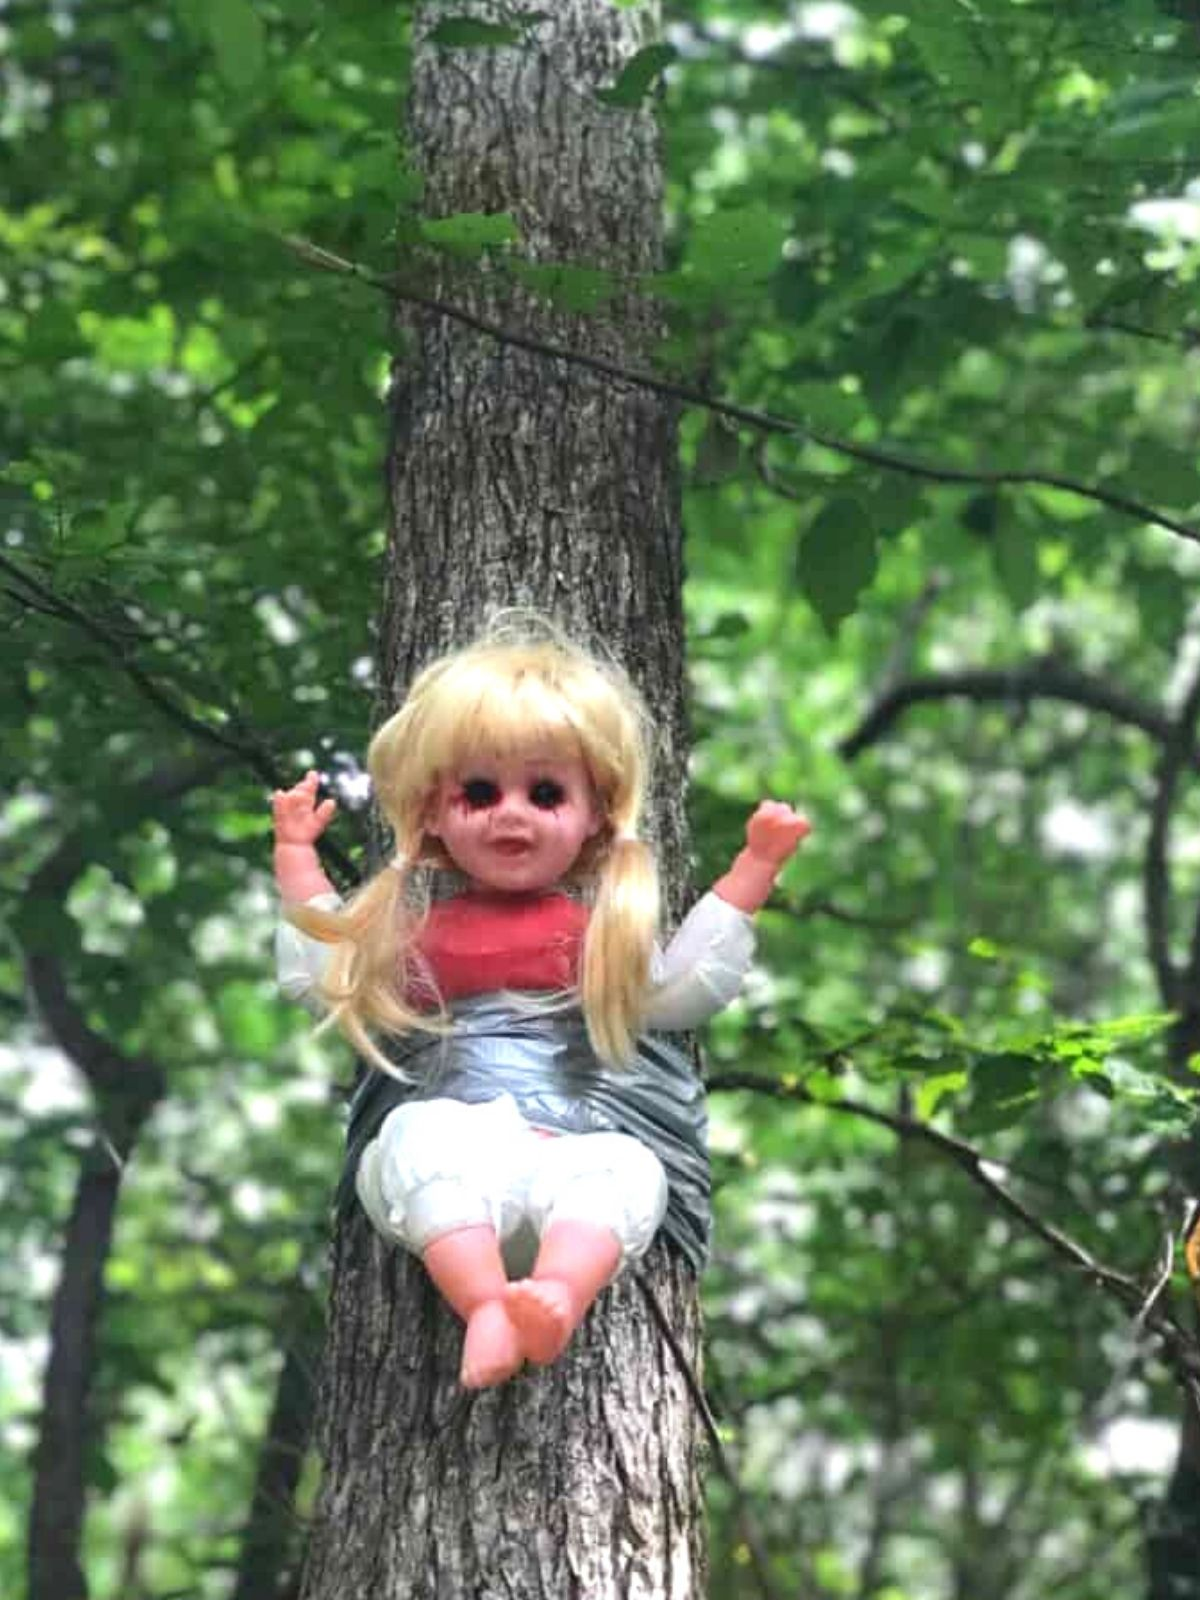 a plastic baby doll with long blonde hair is strapped to a tree near cry baby bridge. It's eyes have been blackened out.